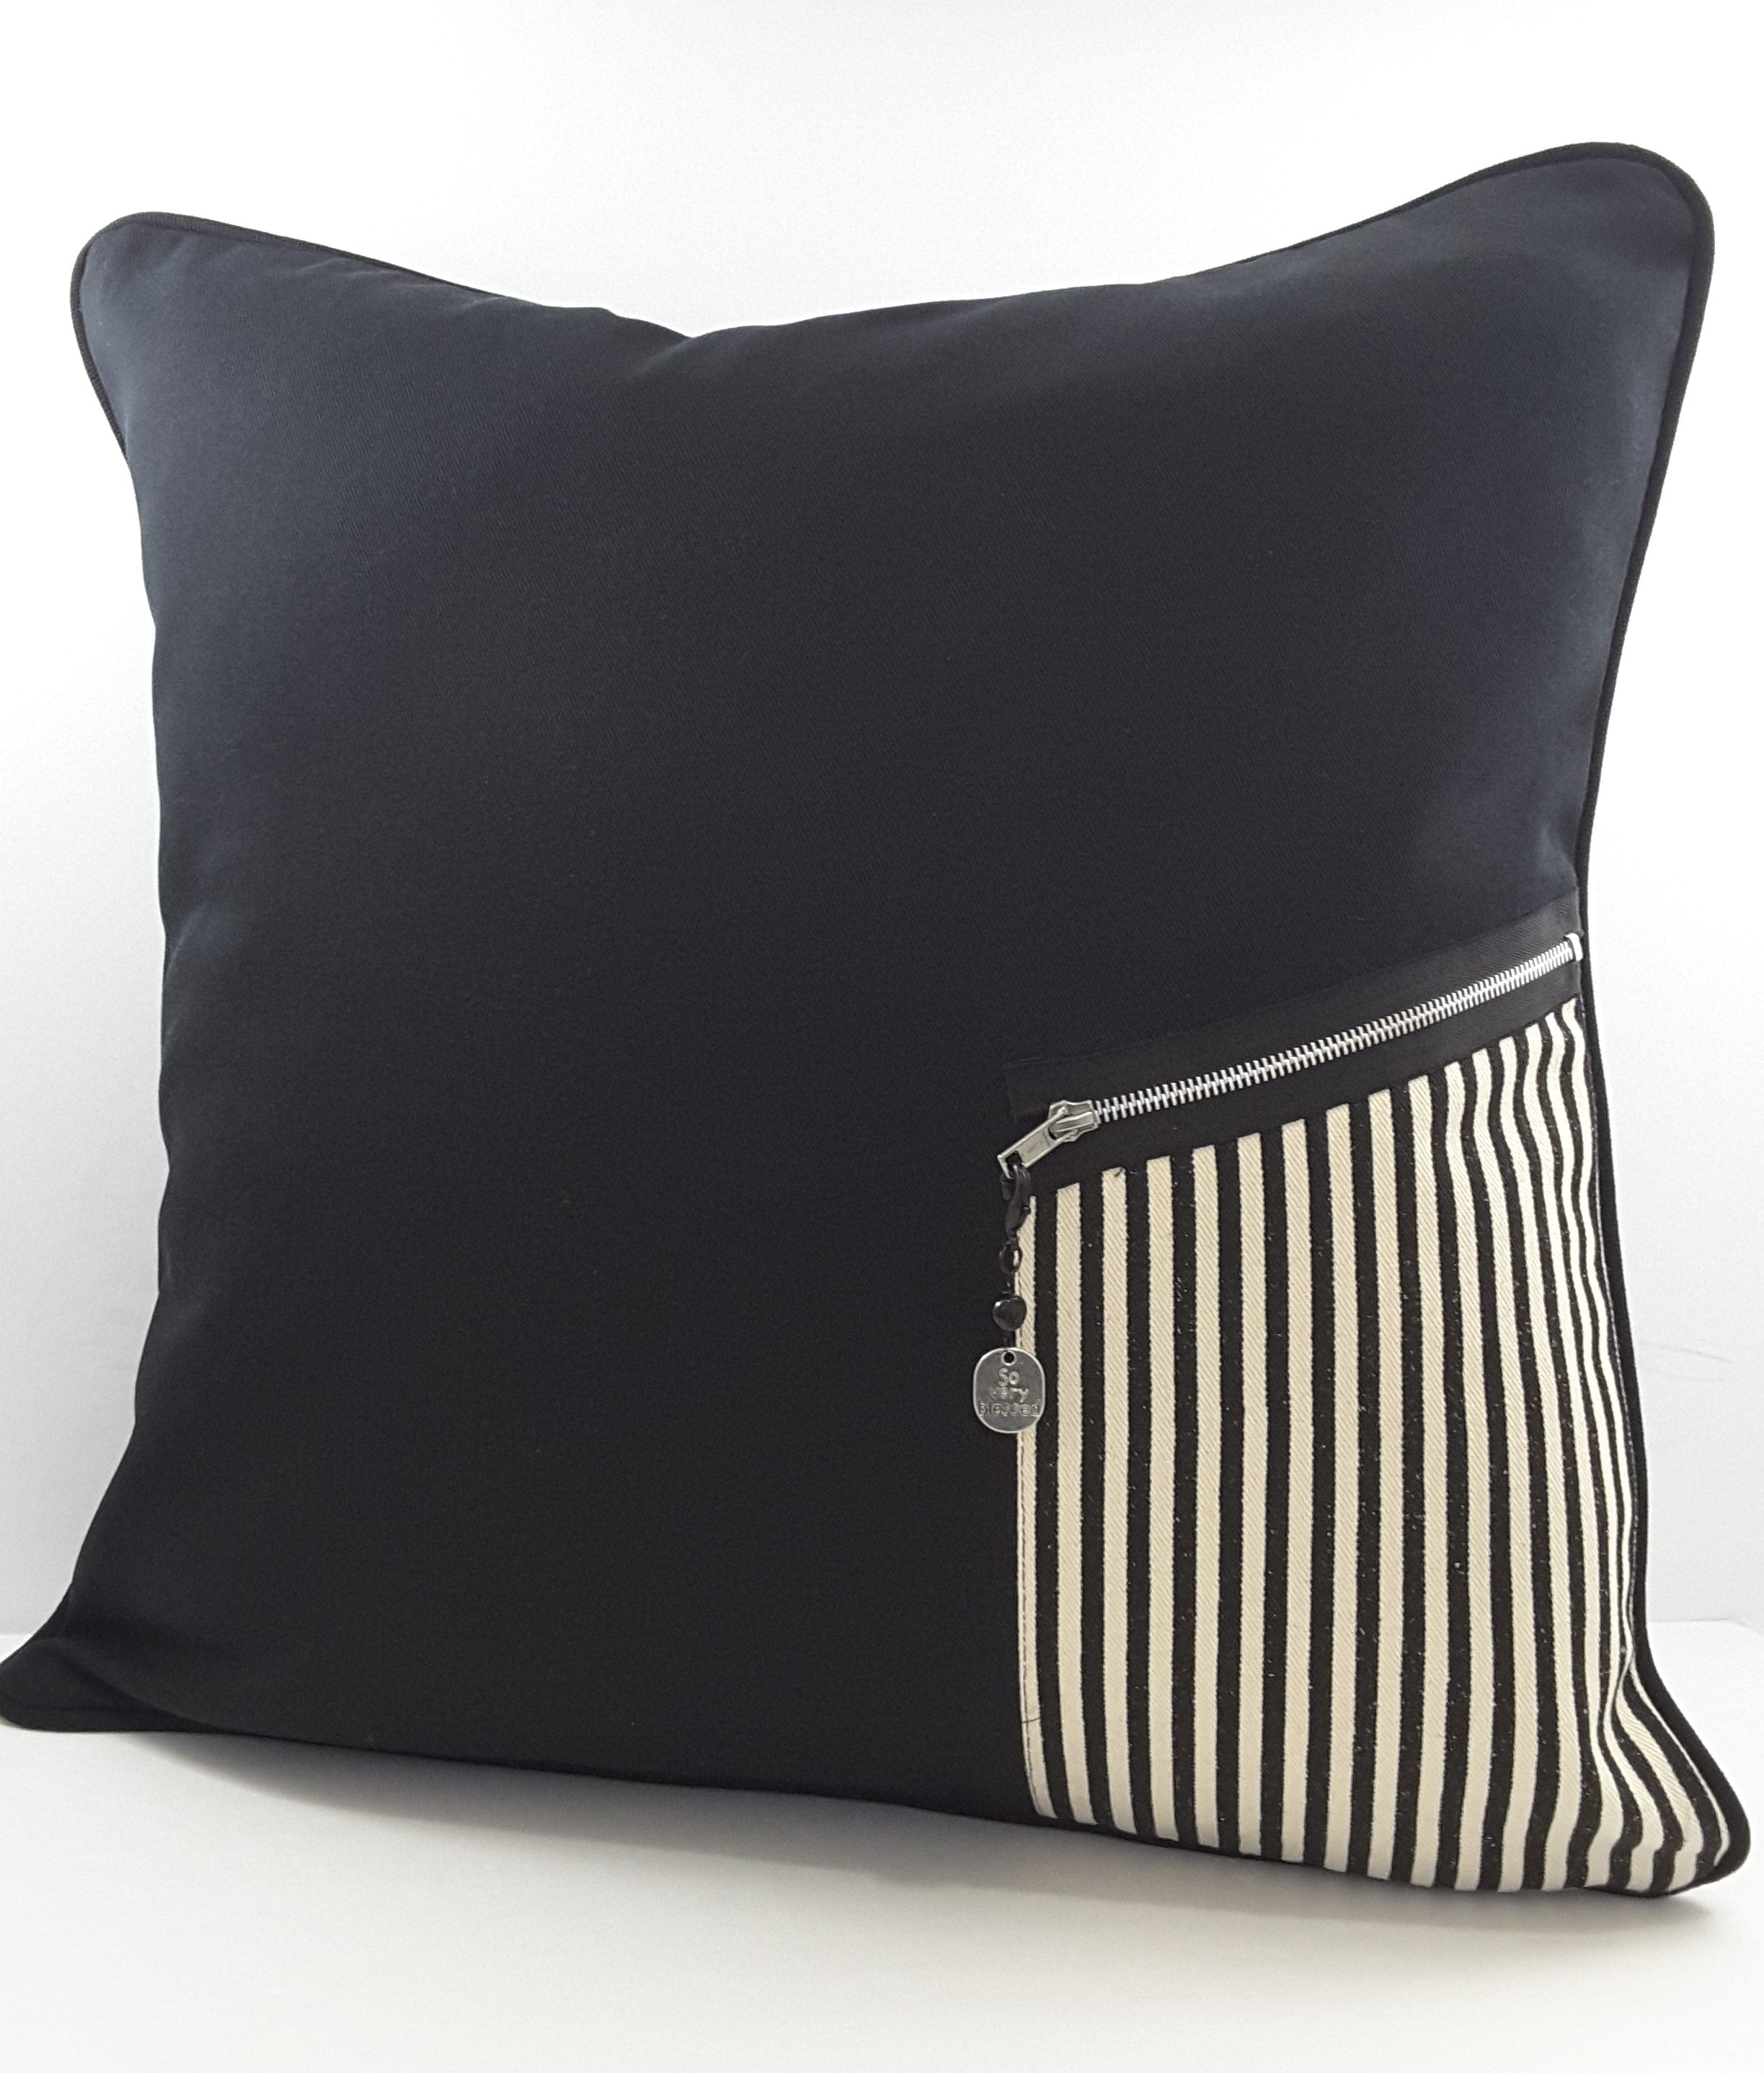 Black Denim Designer Pillow with Zippered Pocket & Charm - Free Shipping! - TheLastWordBish.com